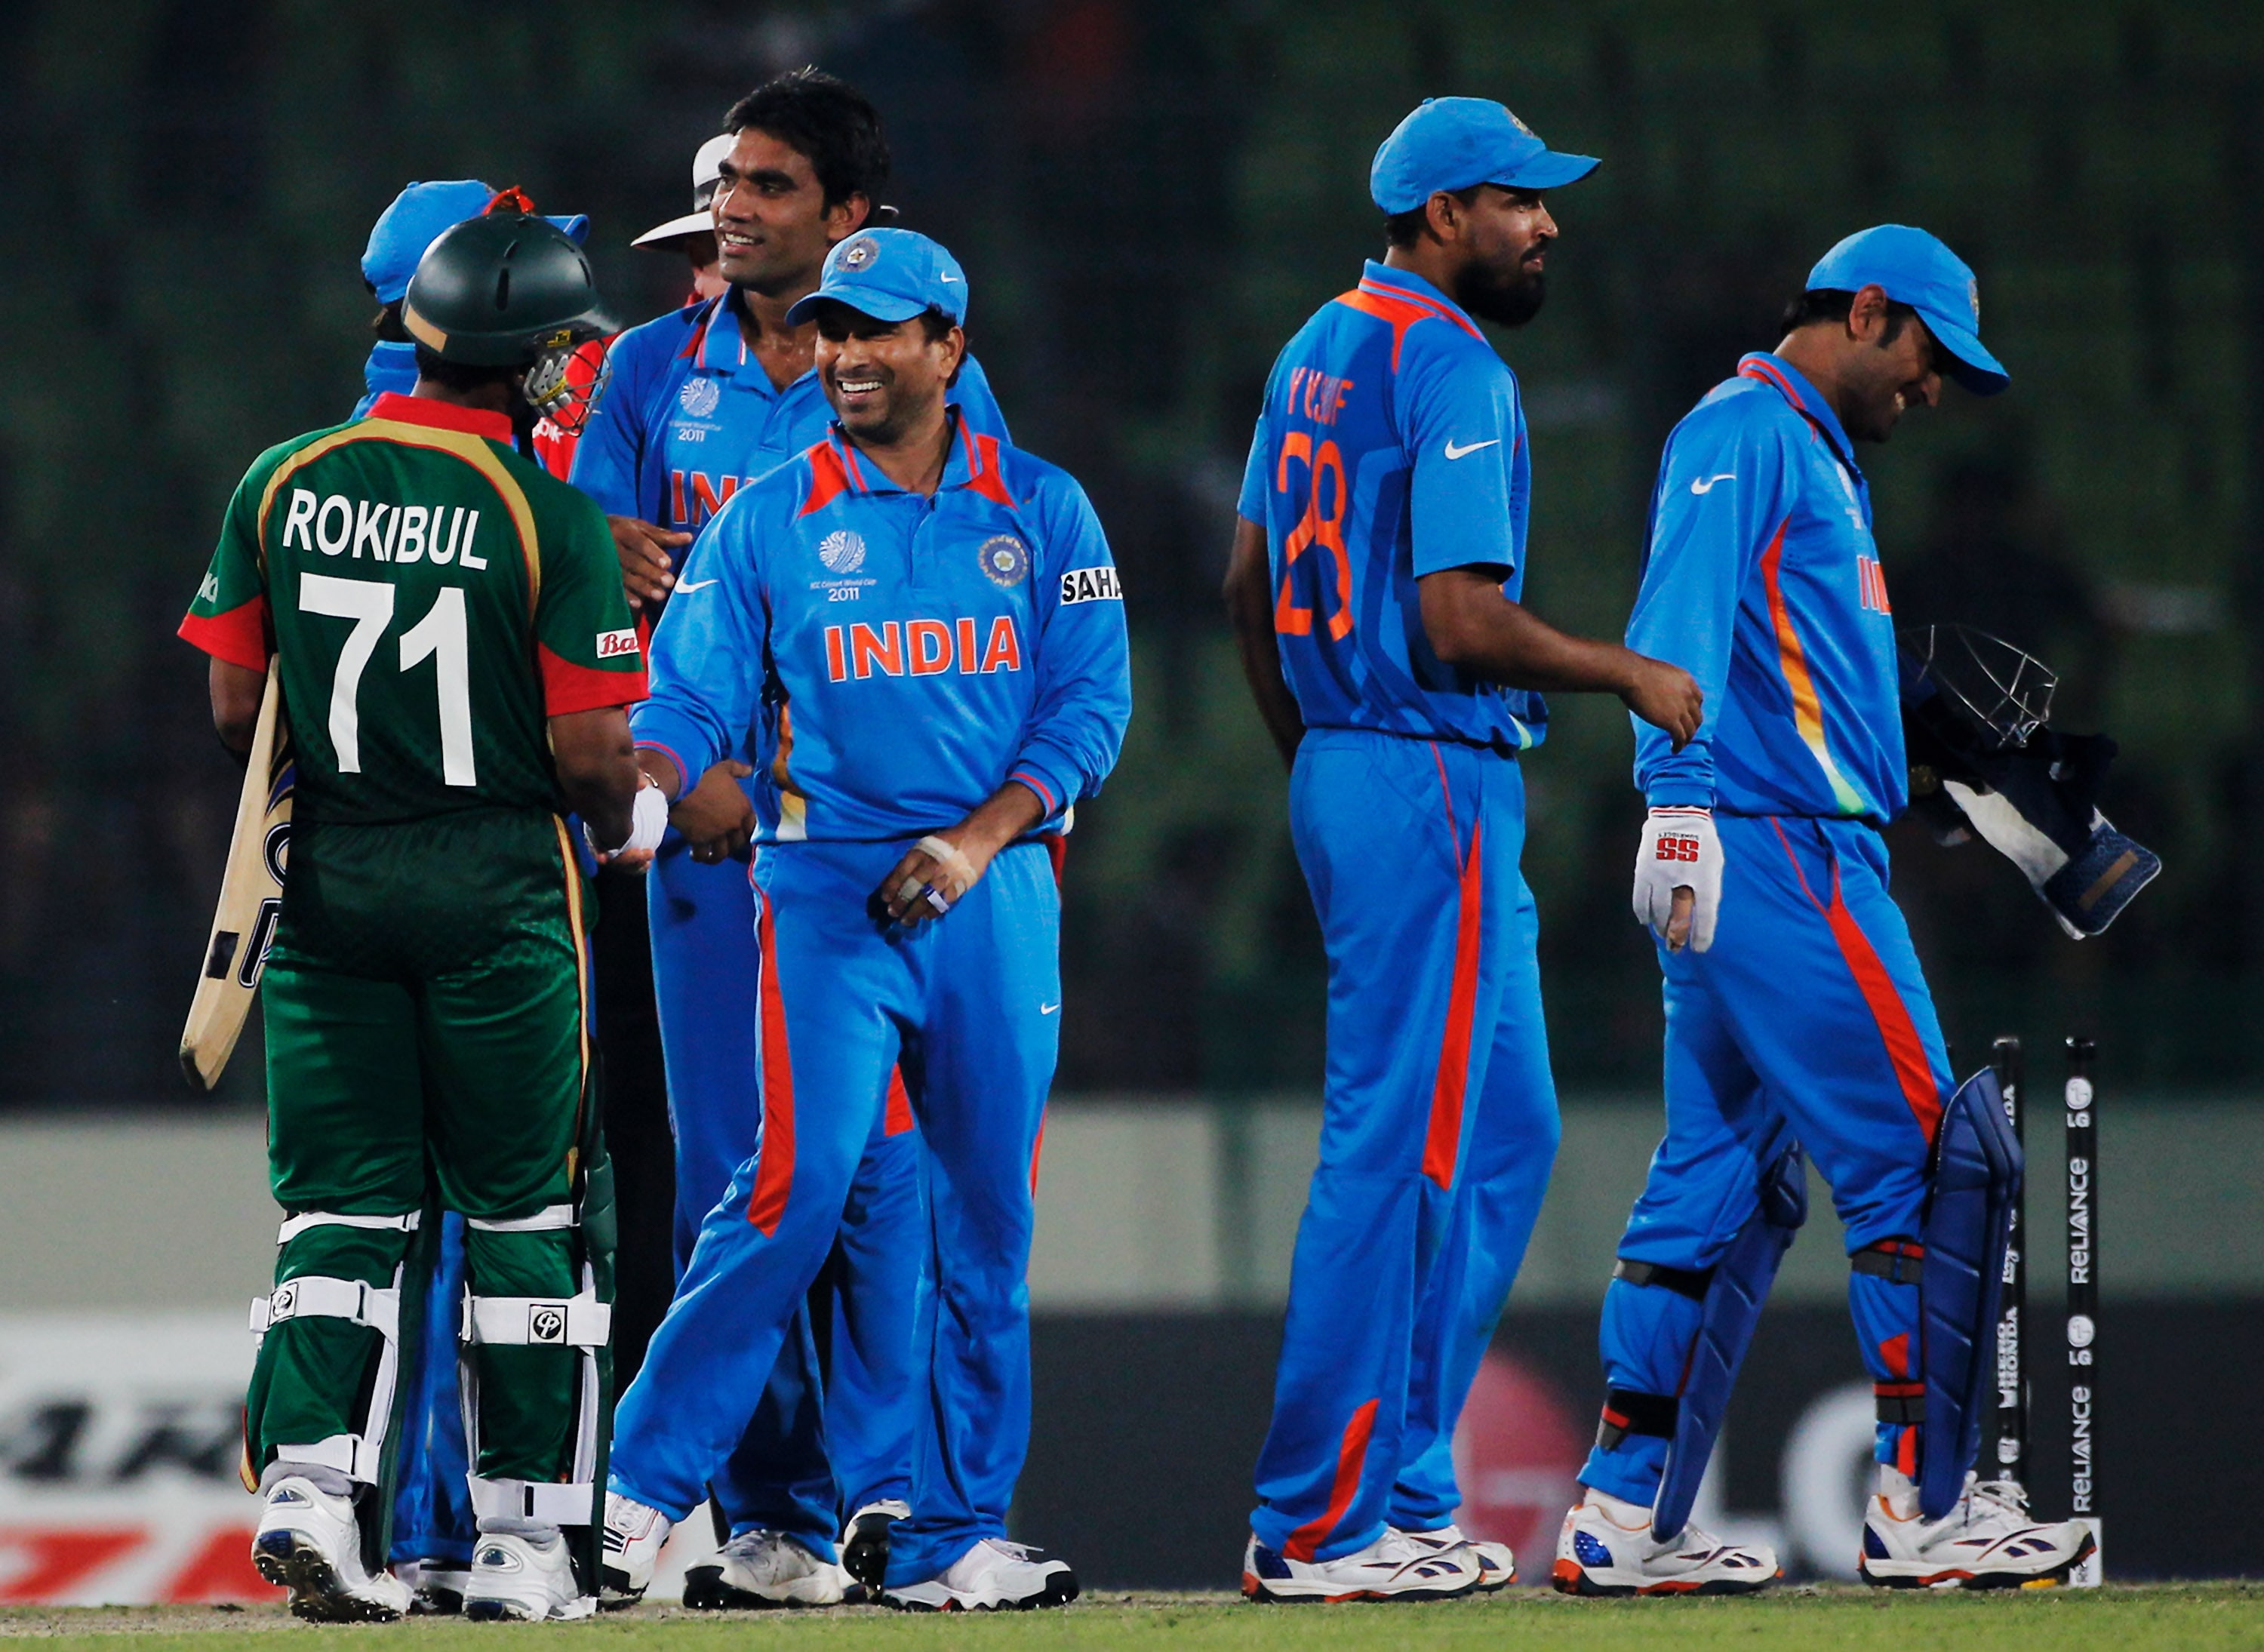 The Indian team celebrate victory over Bangladesh after winning by 87 runs during the opening game of the ICC World Cup at the Sher-e-Bangla National Stadium in Dhaka. (Getty Images)